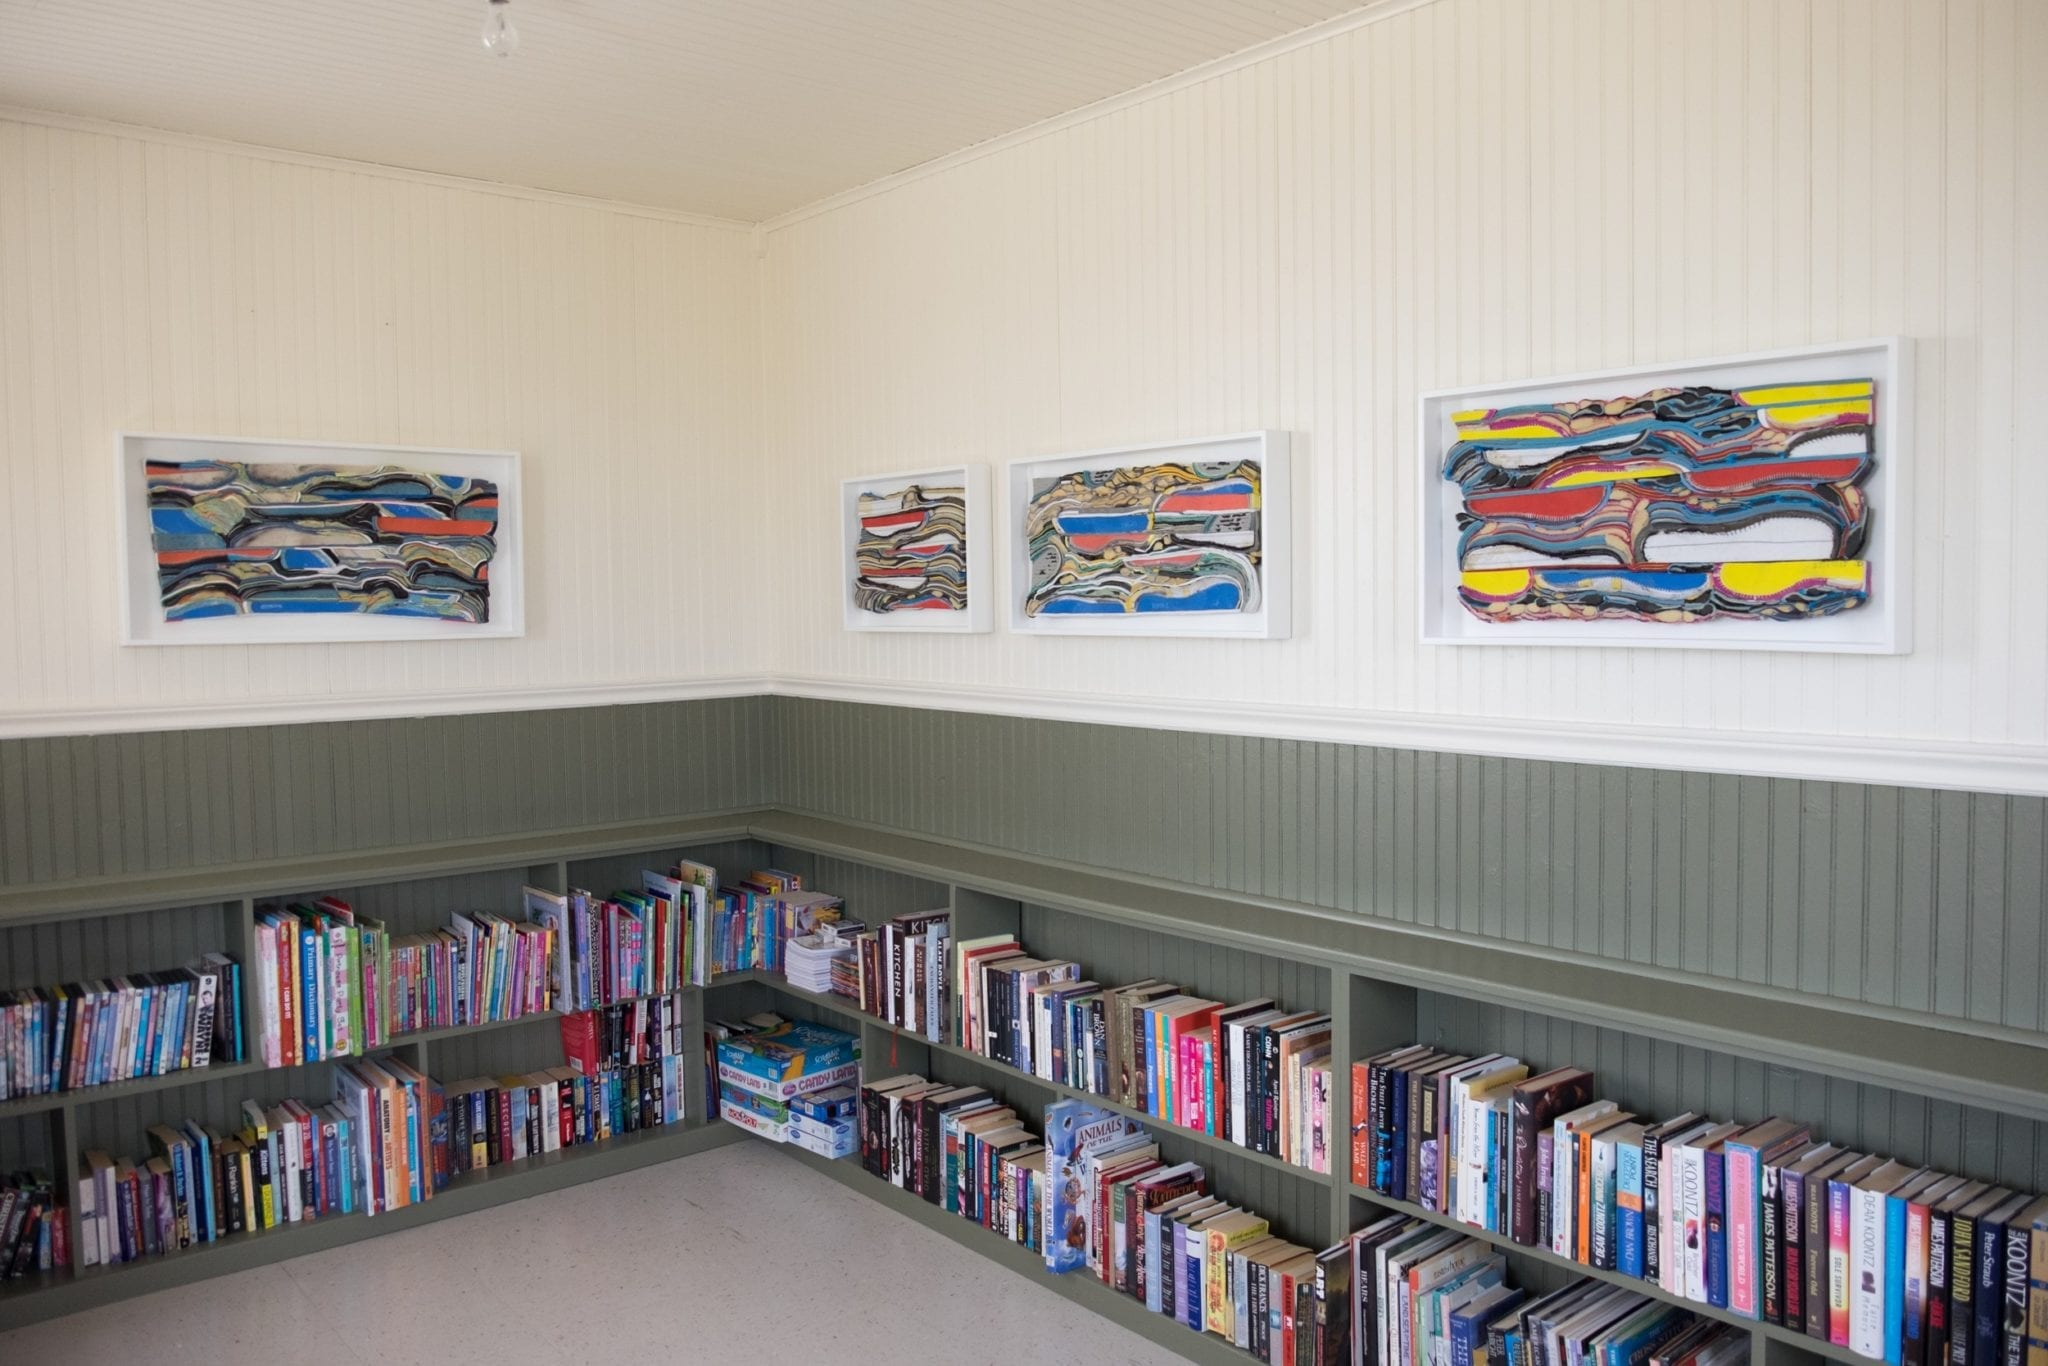 Above low bookshelves, four of Meghan Price's works of art, with the 3d layers of rubber from sneakers symbolizing layers of the Earth's crust.